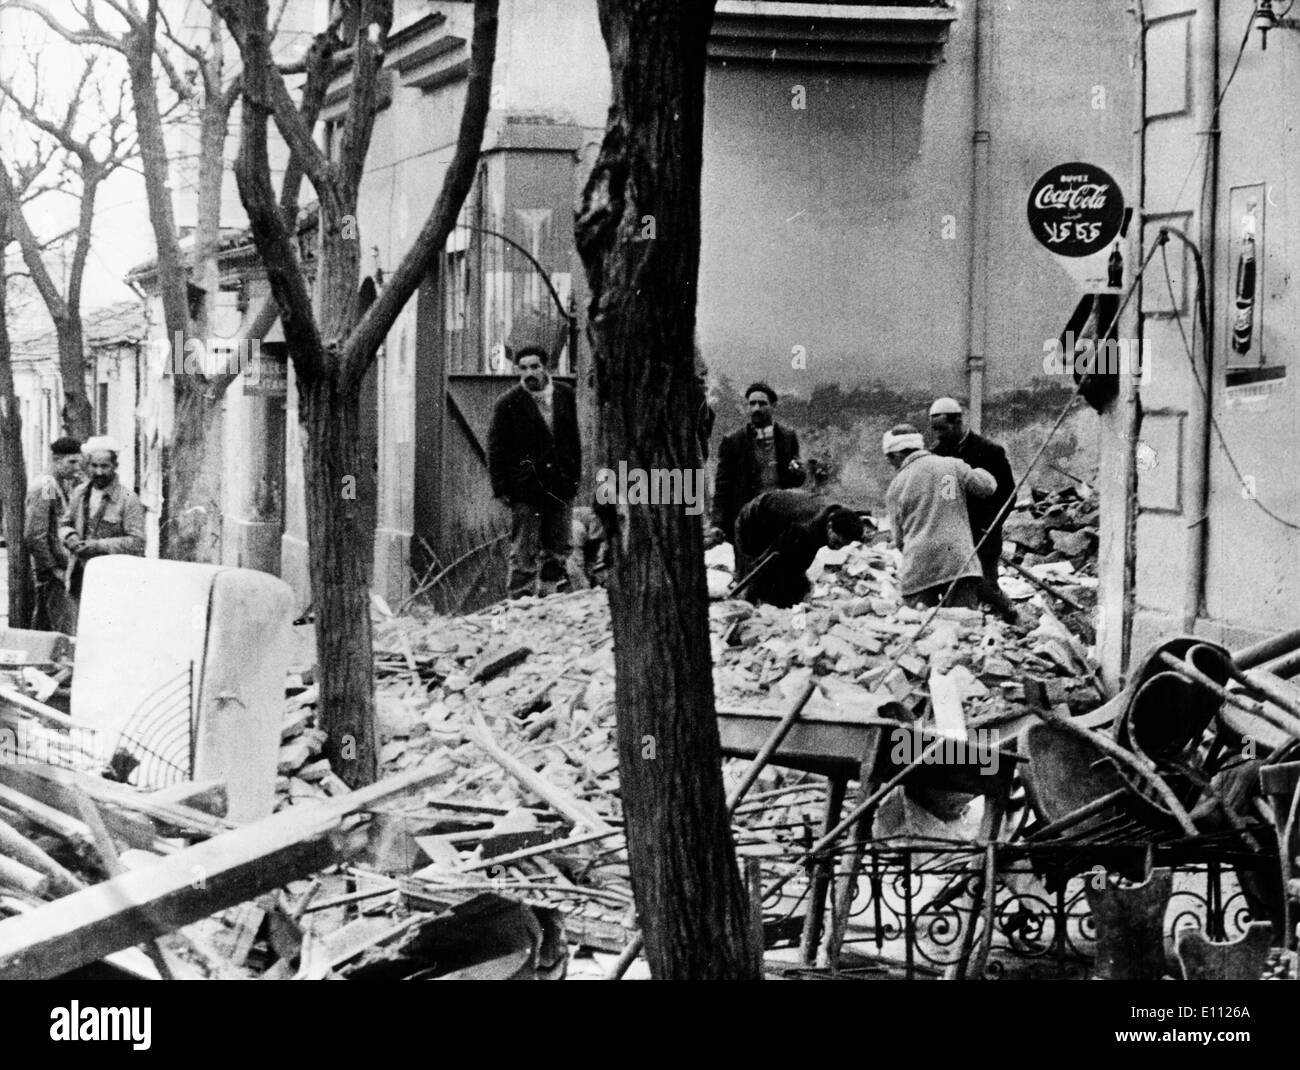 Muslims clean market place after bombing - Stock Image